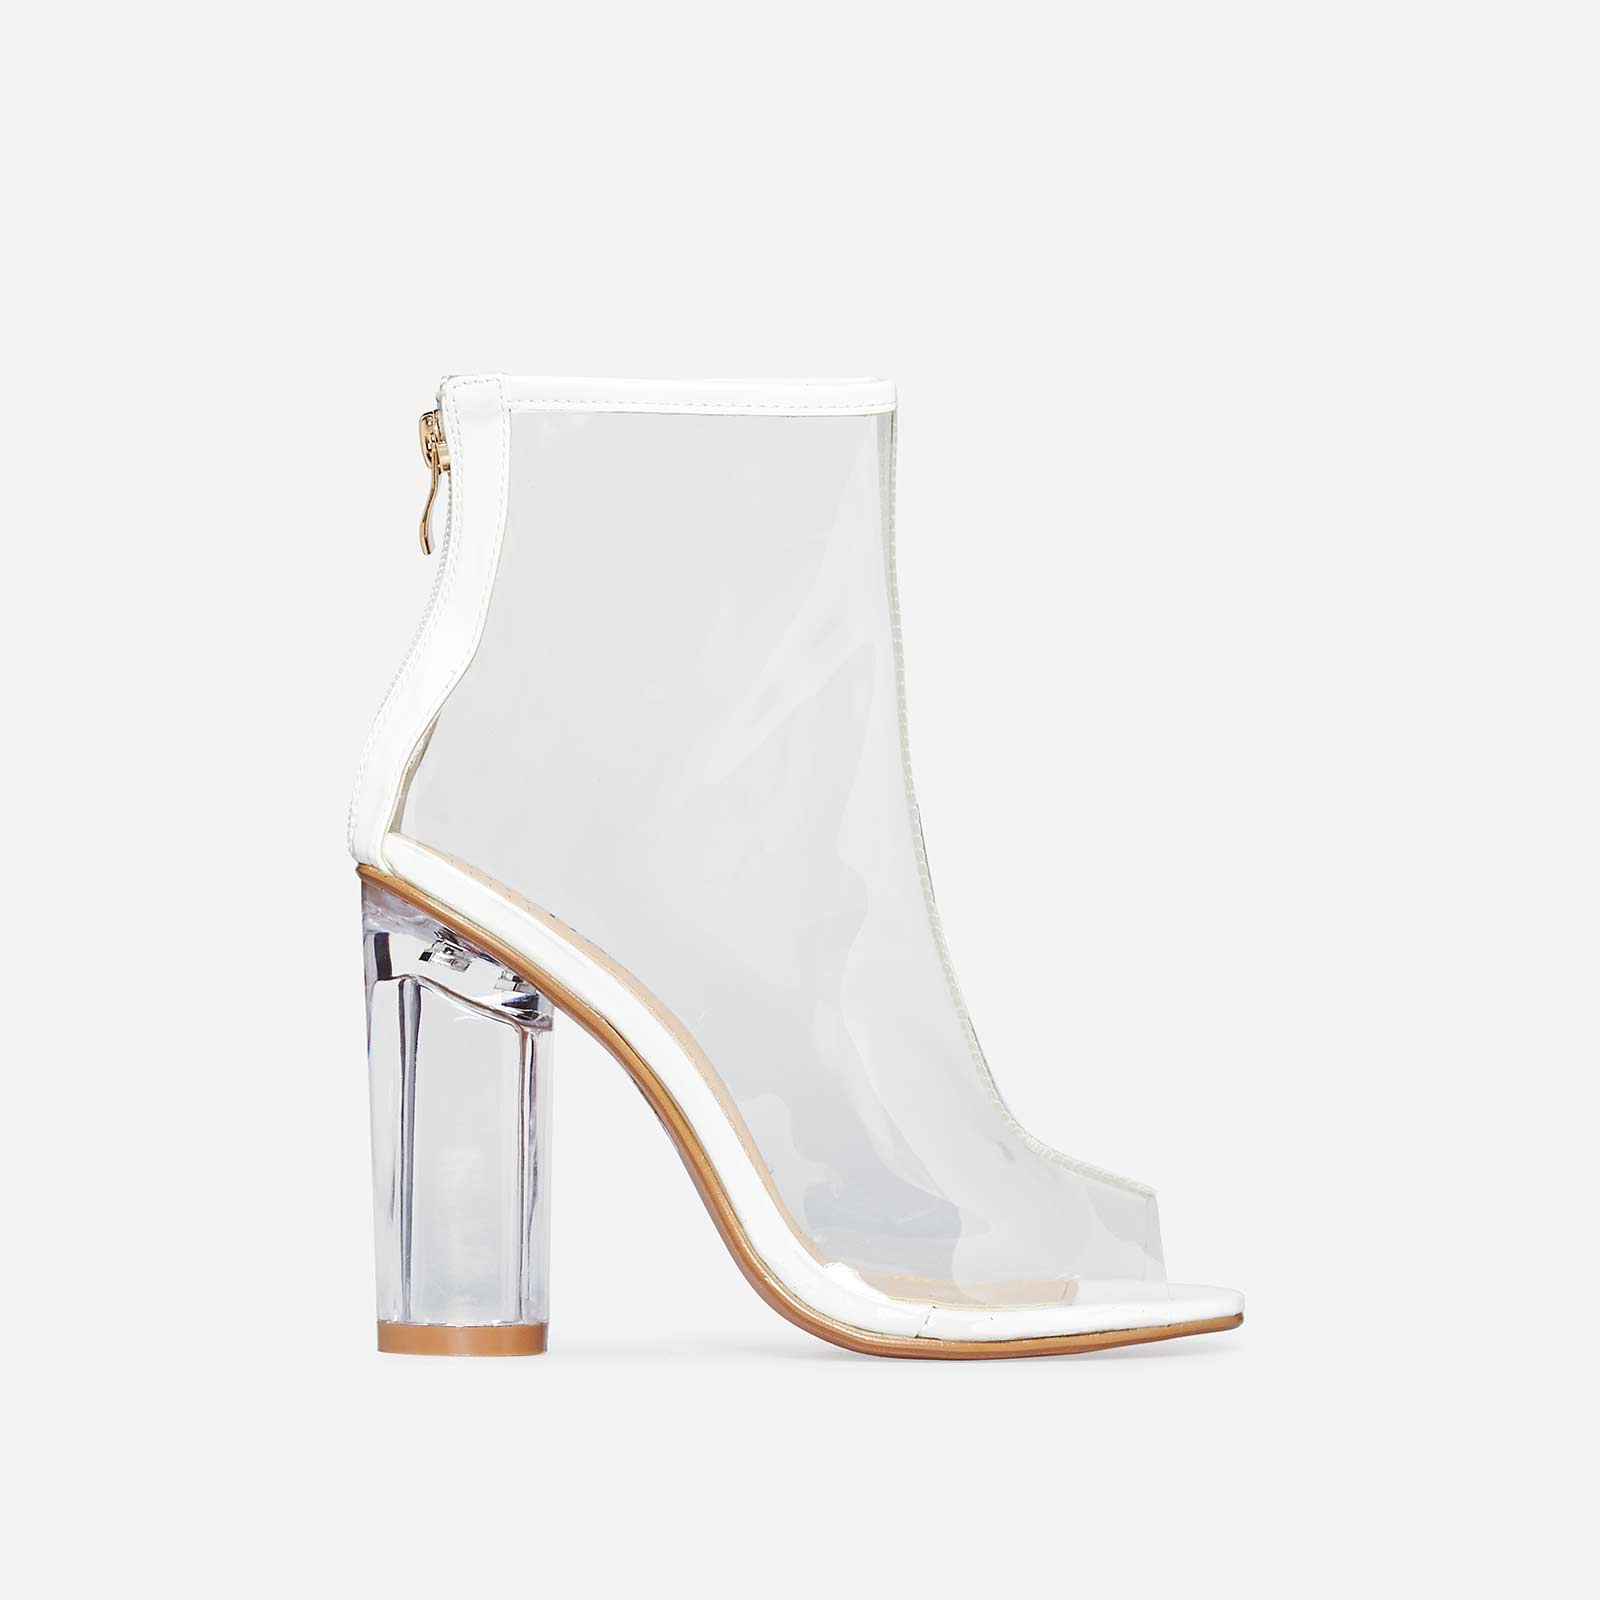 Cate Peep Toe Perspex Ankle Boot In White Patent